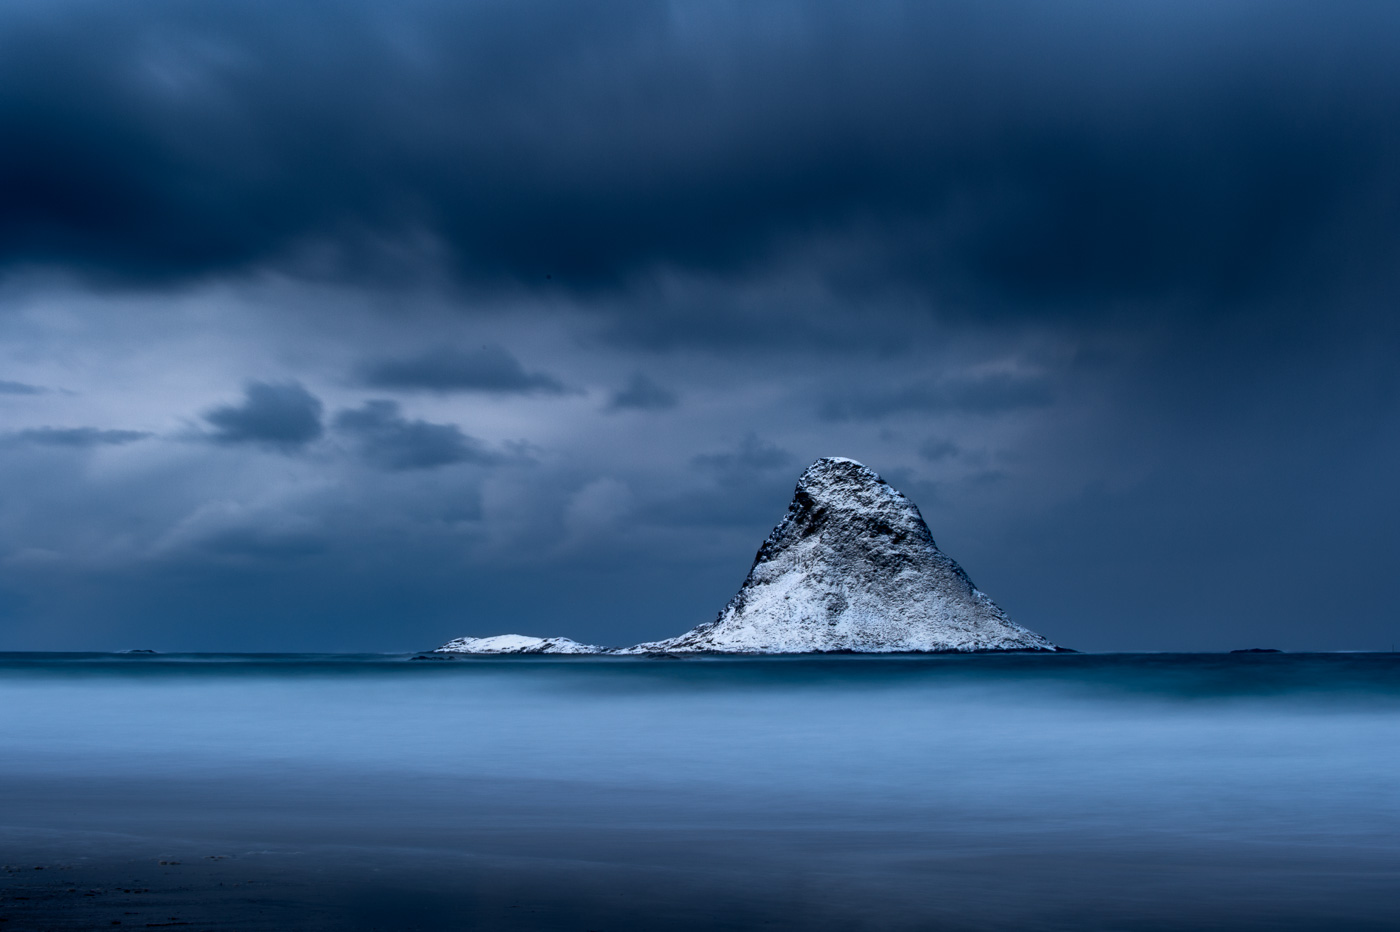 puffin_island_winter_storm_norway